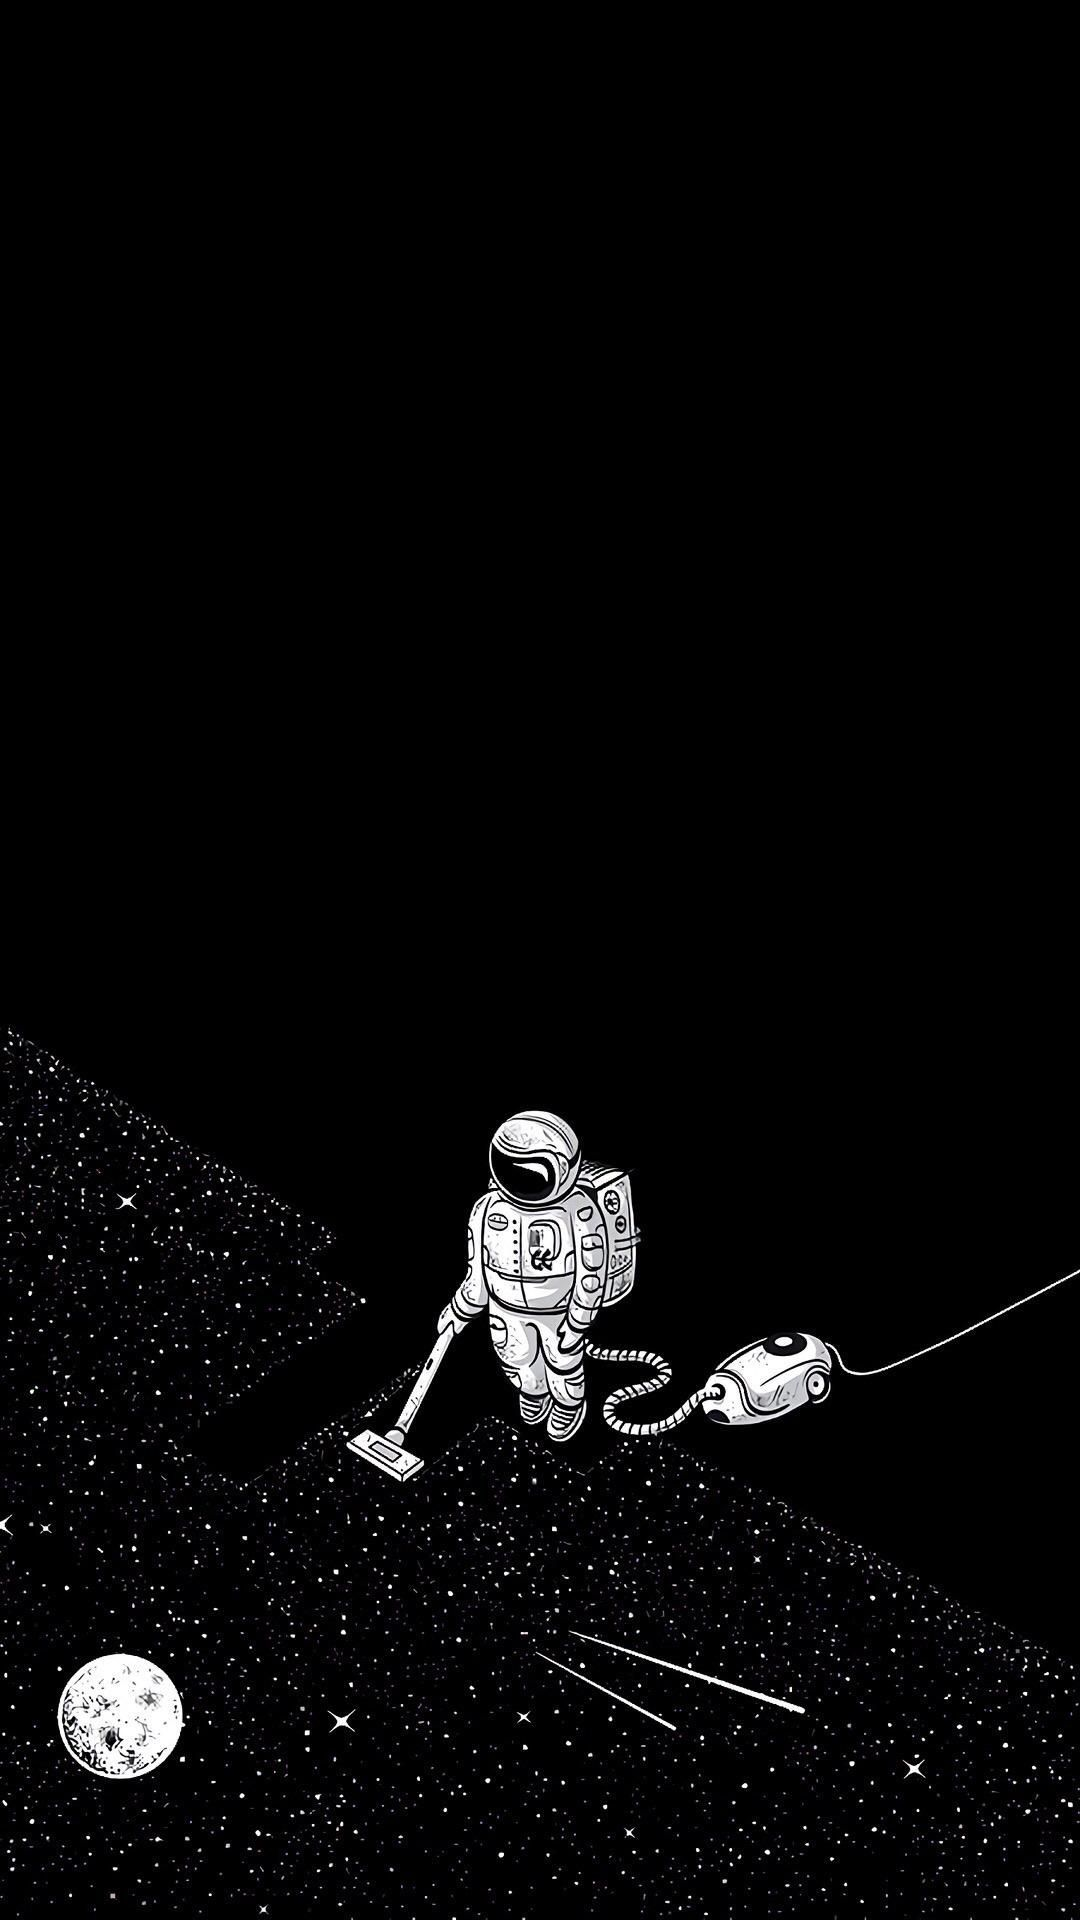 Had This Wallpaper For Some Time Looks Great With Dark Mode For Apple In 2020 Hipster Wallpaper Iphone Wallpaper Tumblr Hipster Astronaut Wallpaper